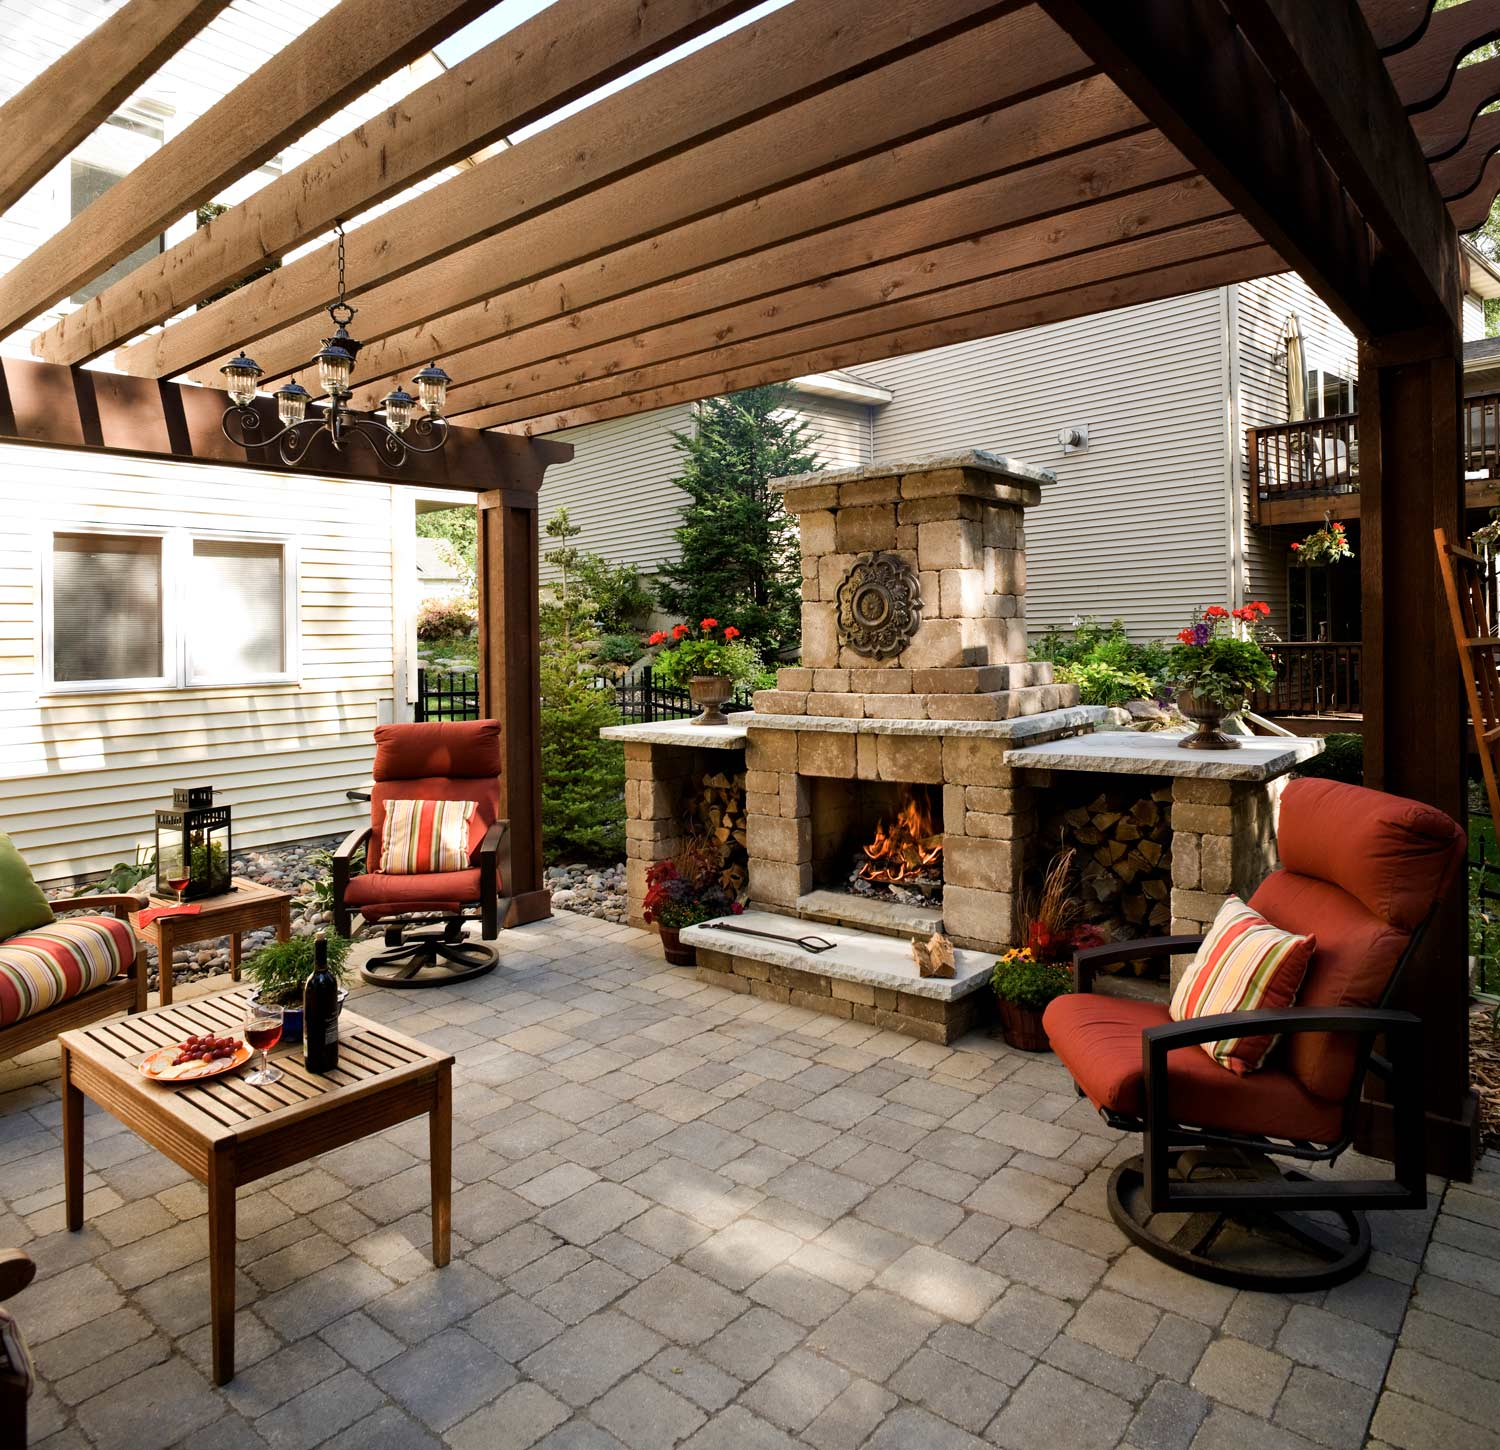 Pergola covers the entire patio in this small backyard landscape in savage